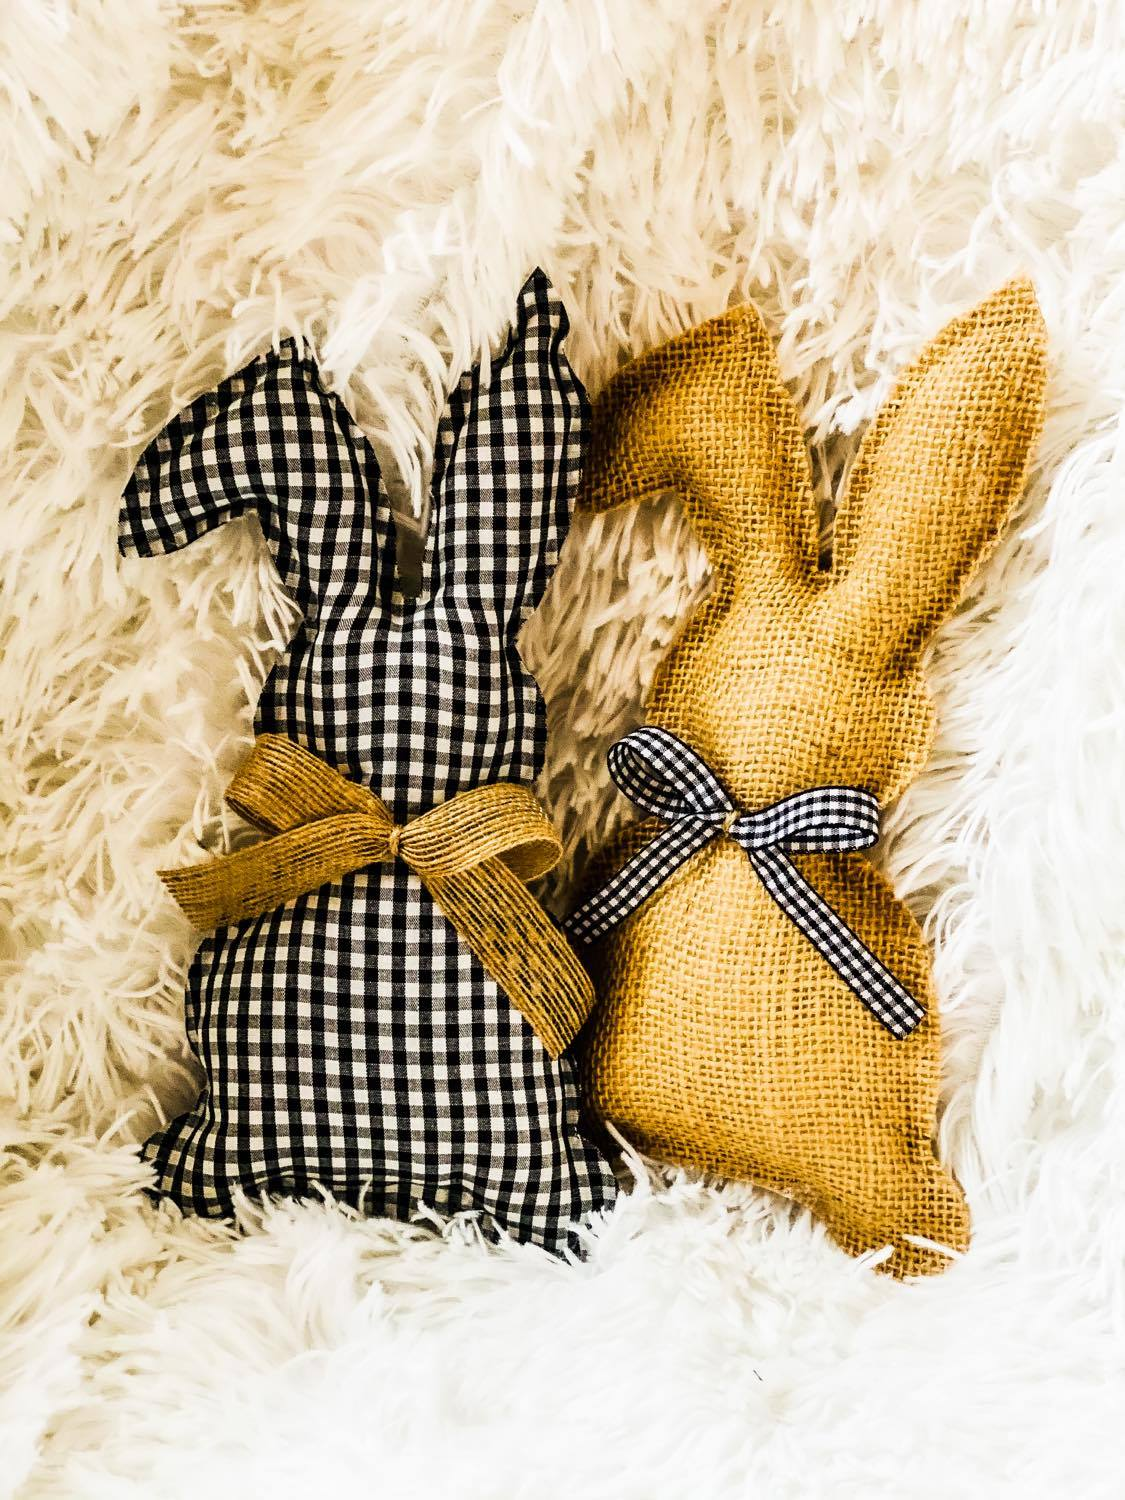 Farmhouse Easter Bunnies – The No-Sew Version!